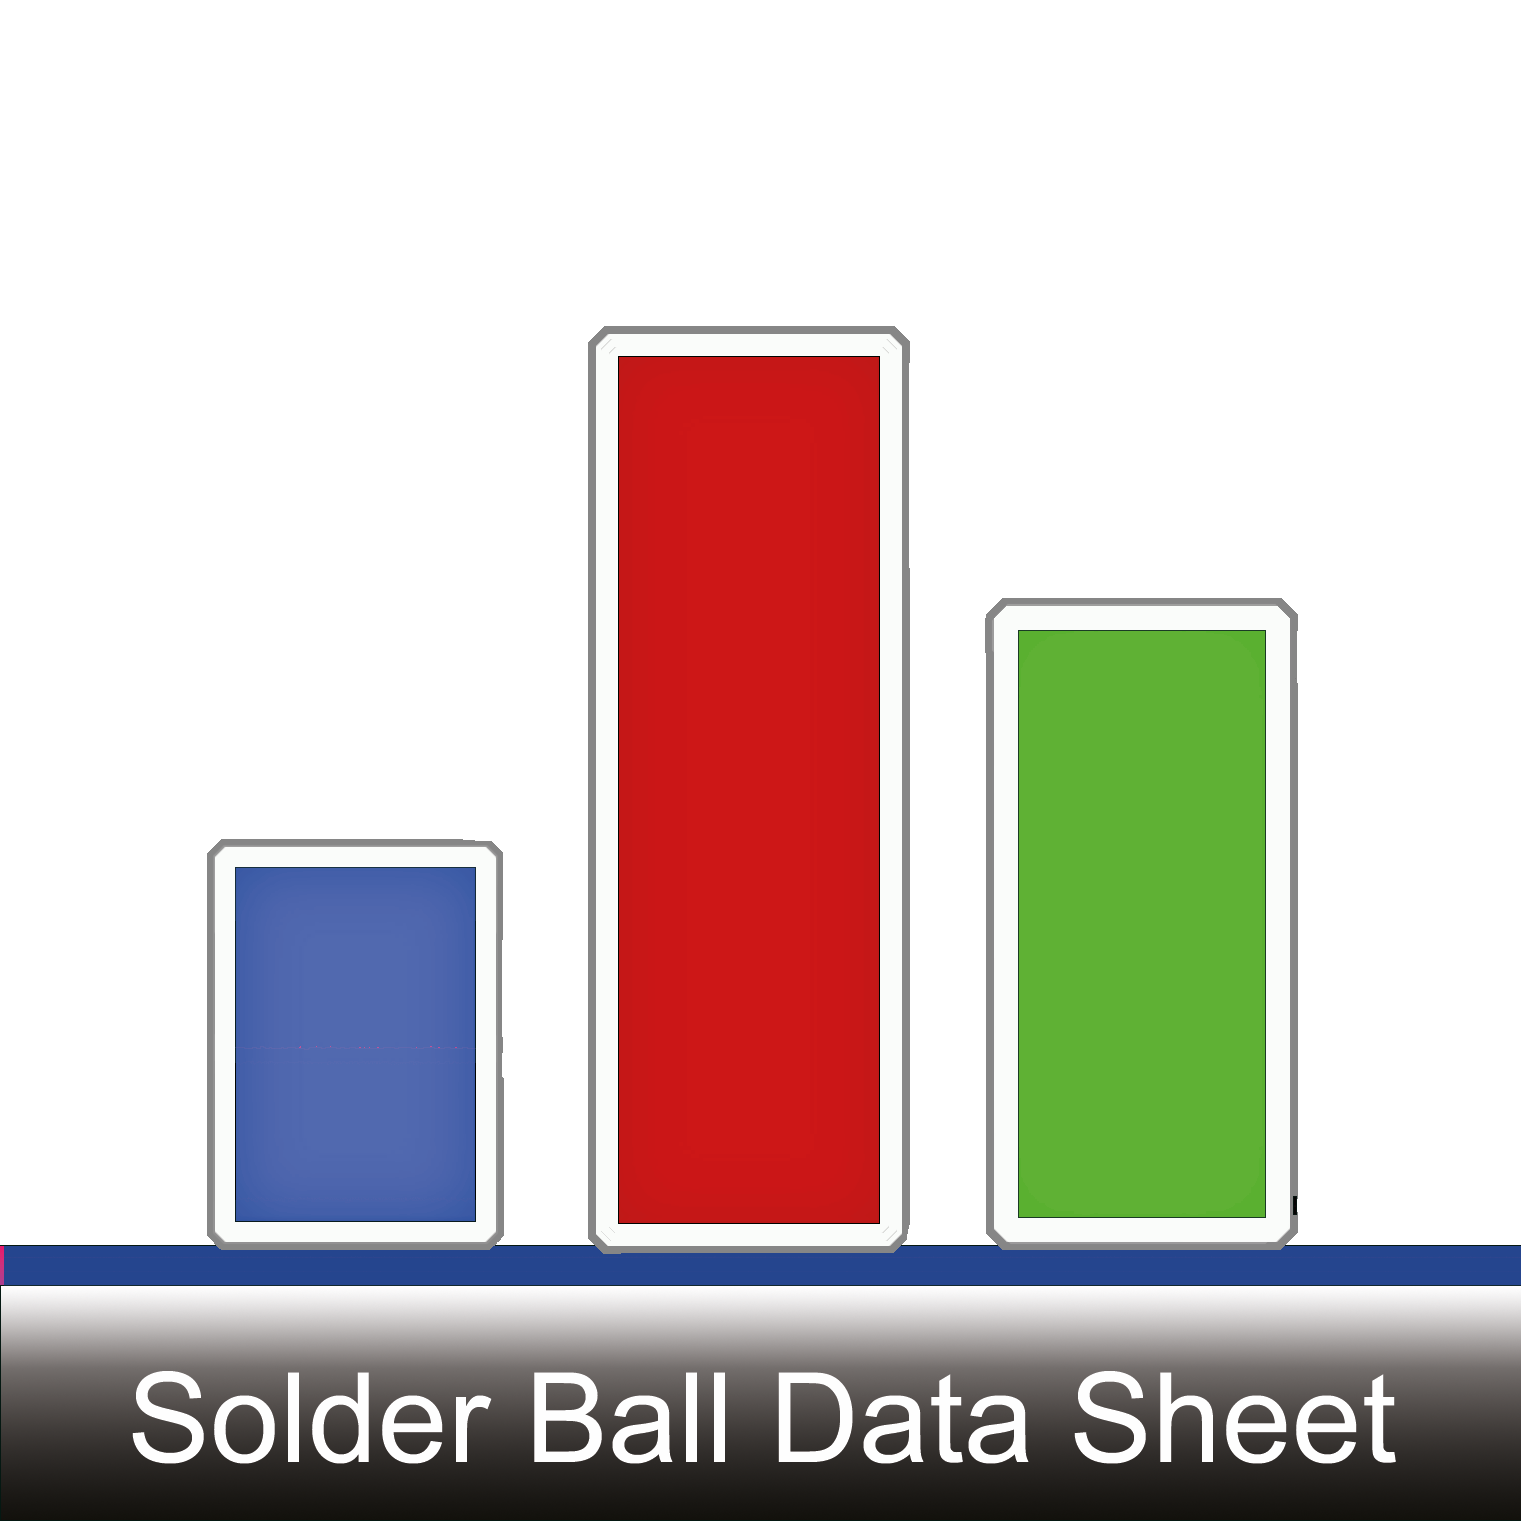 solderball-datasheet-icon.png